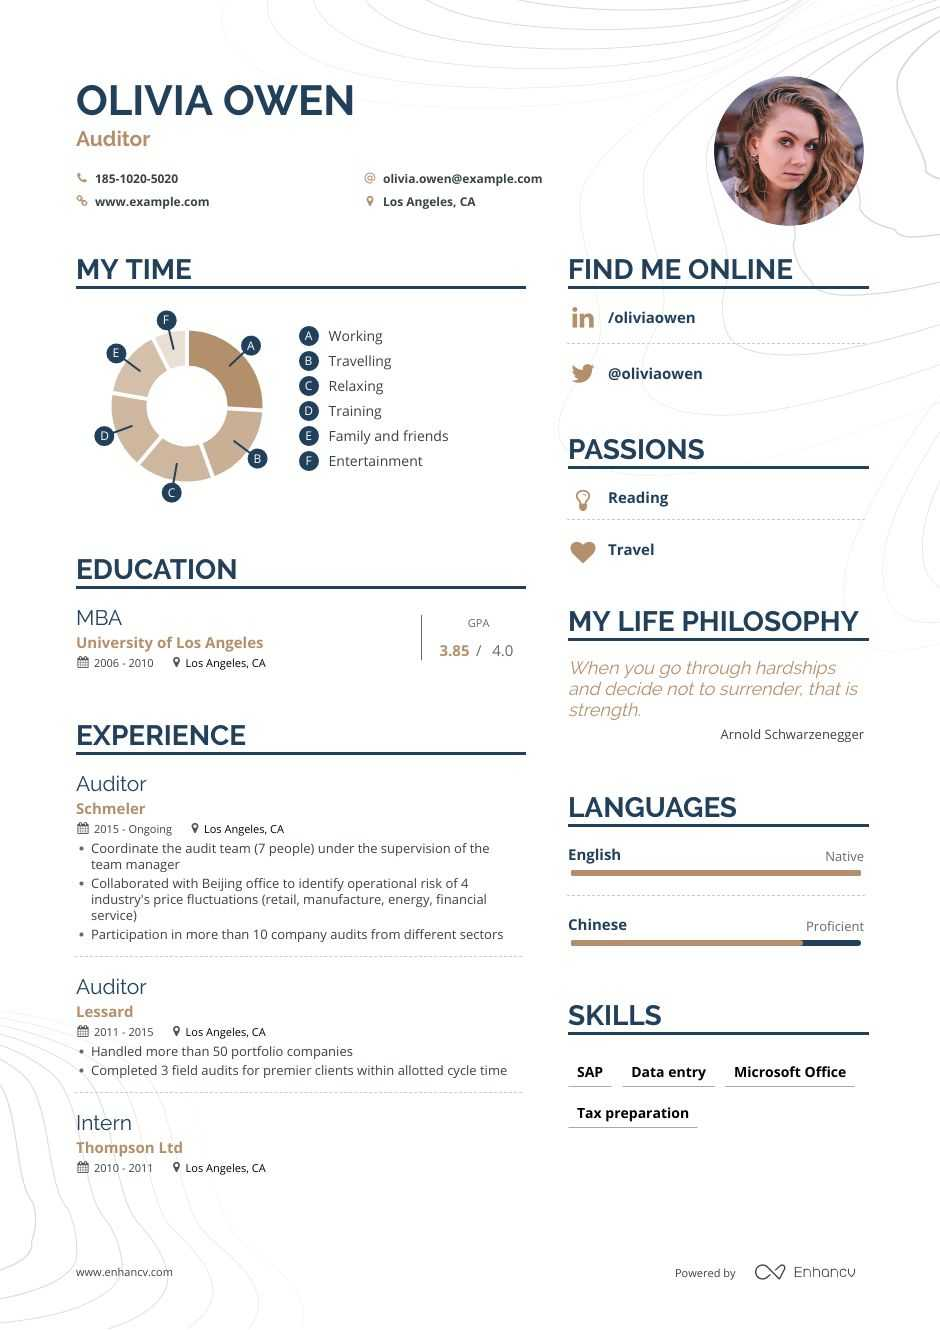 best auditor resume examples with objectives skills templates career objective for Resume Career Objective For Auditor Resume